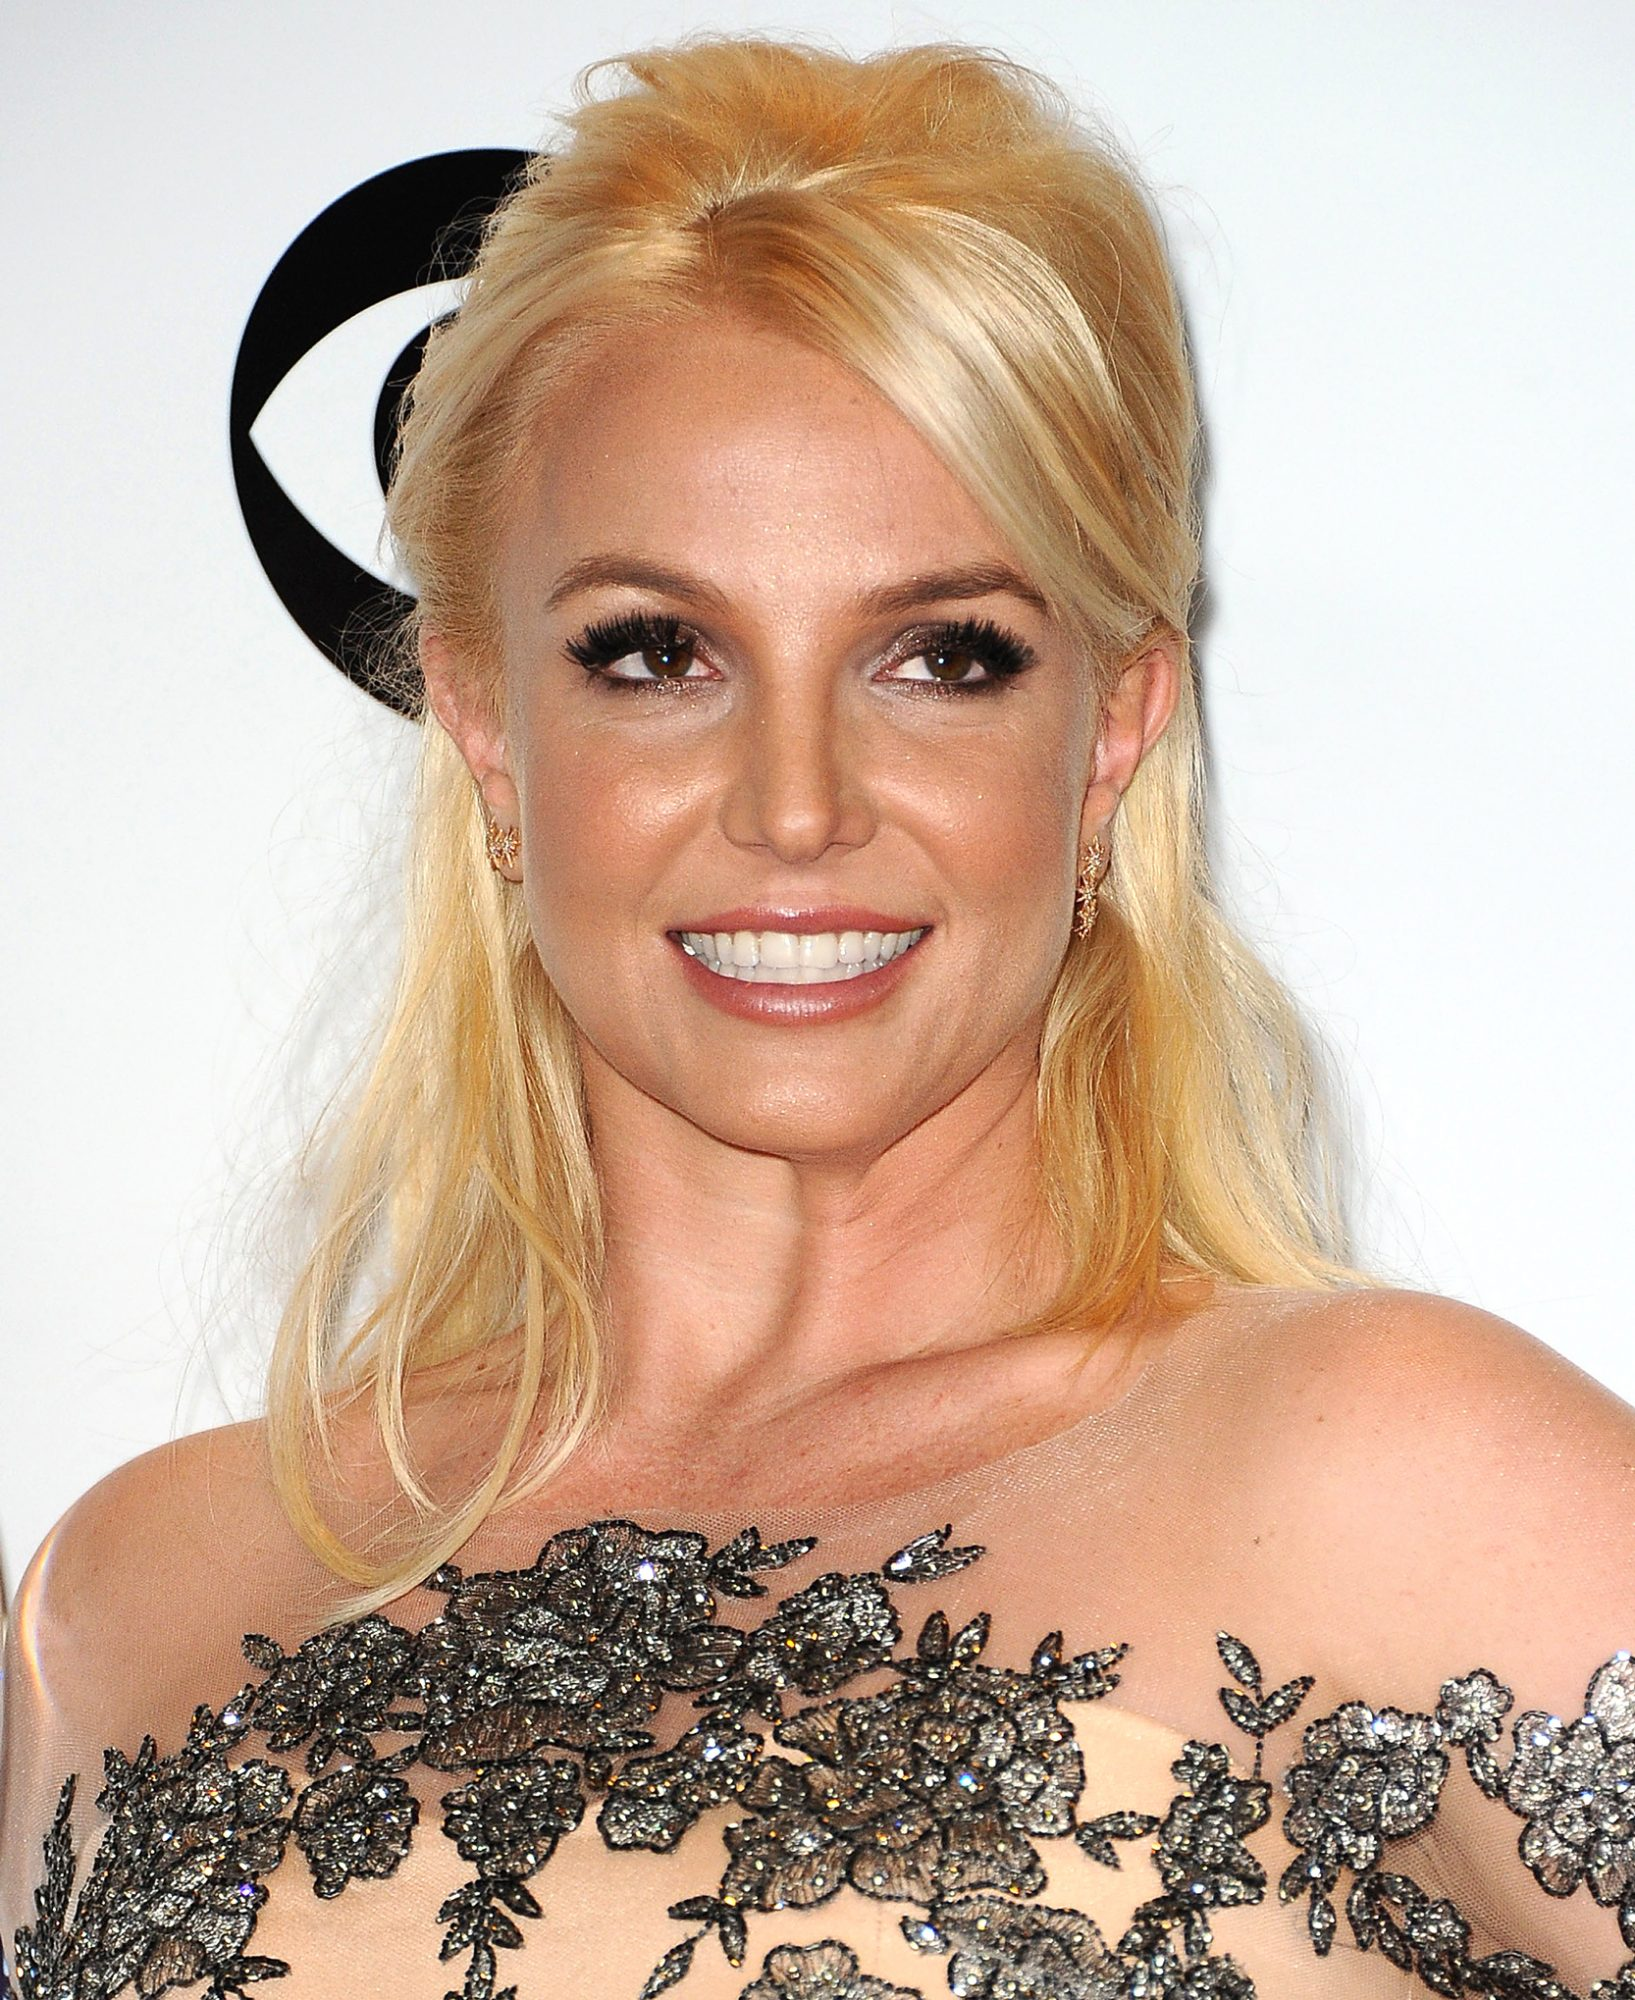 Britney Spears Headshot 2